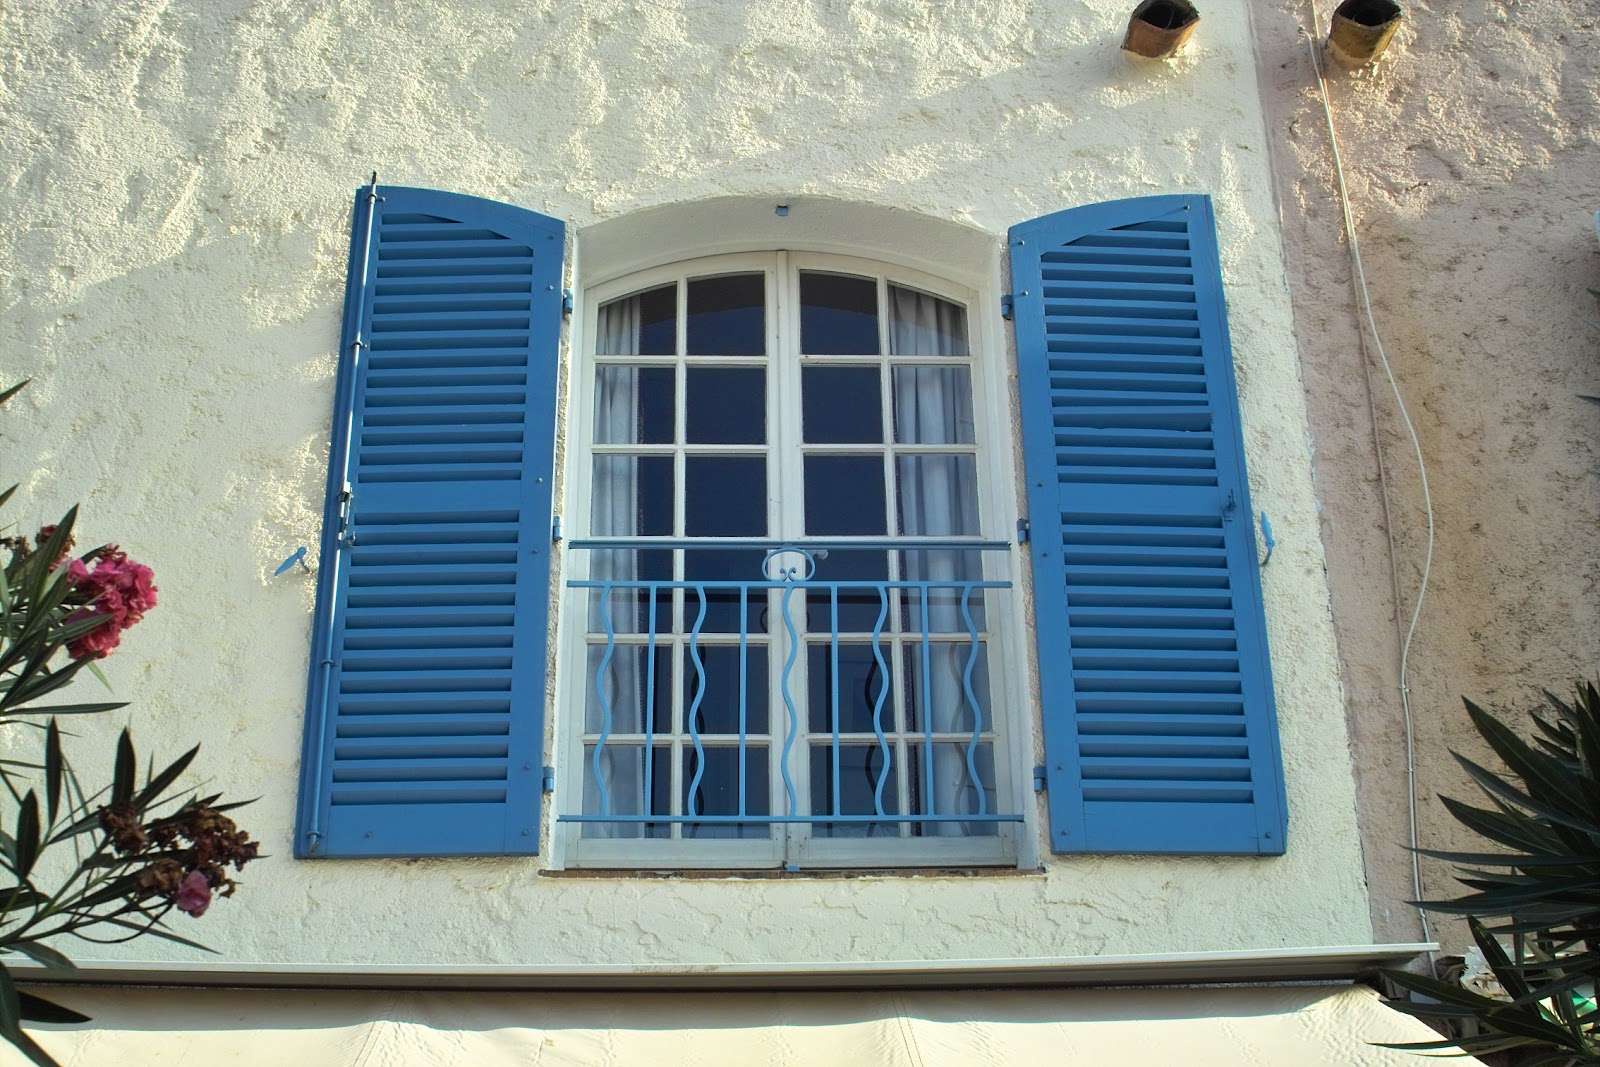 Exterior window trim ideas with shutters - Tuesday May 29 2012